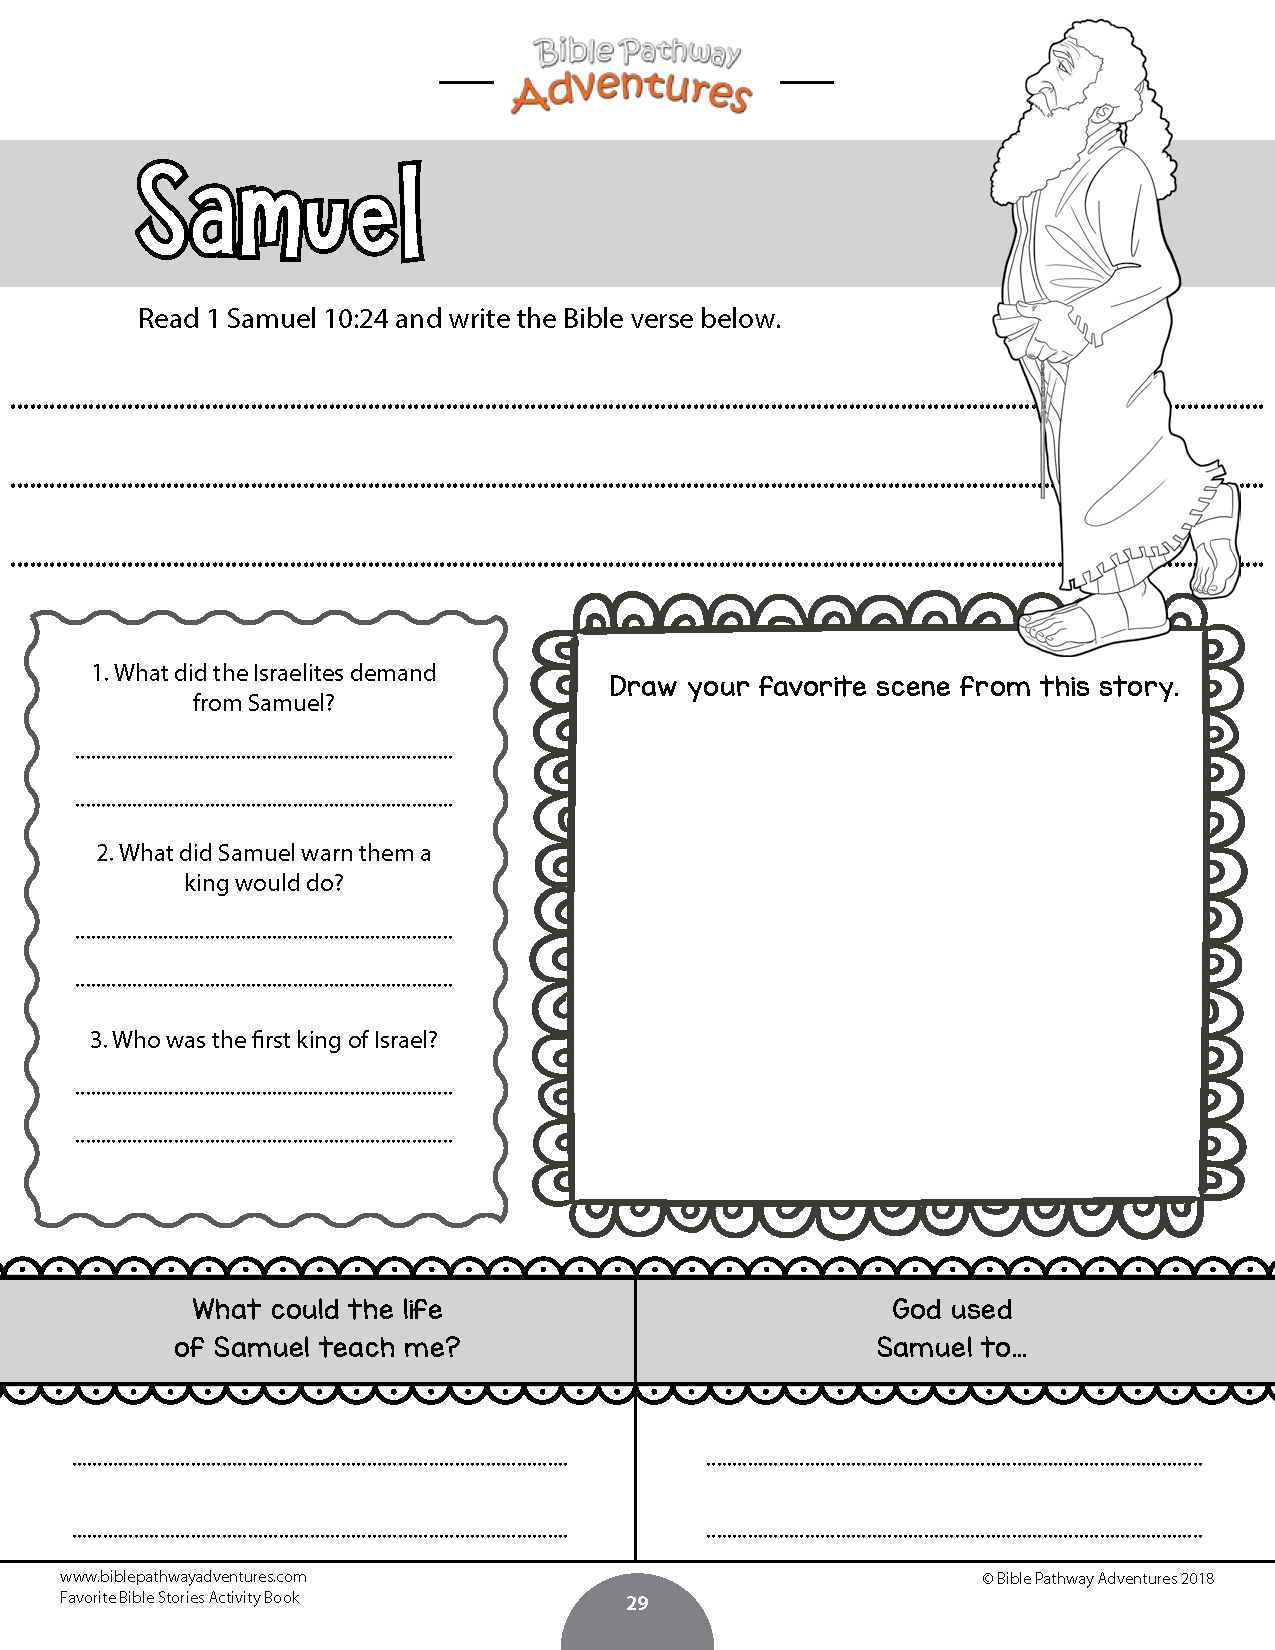 Samuel Coloring Activity For Kids